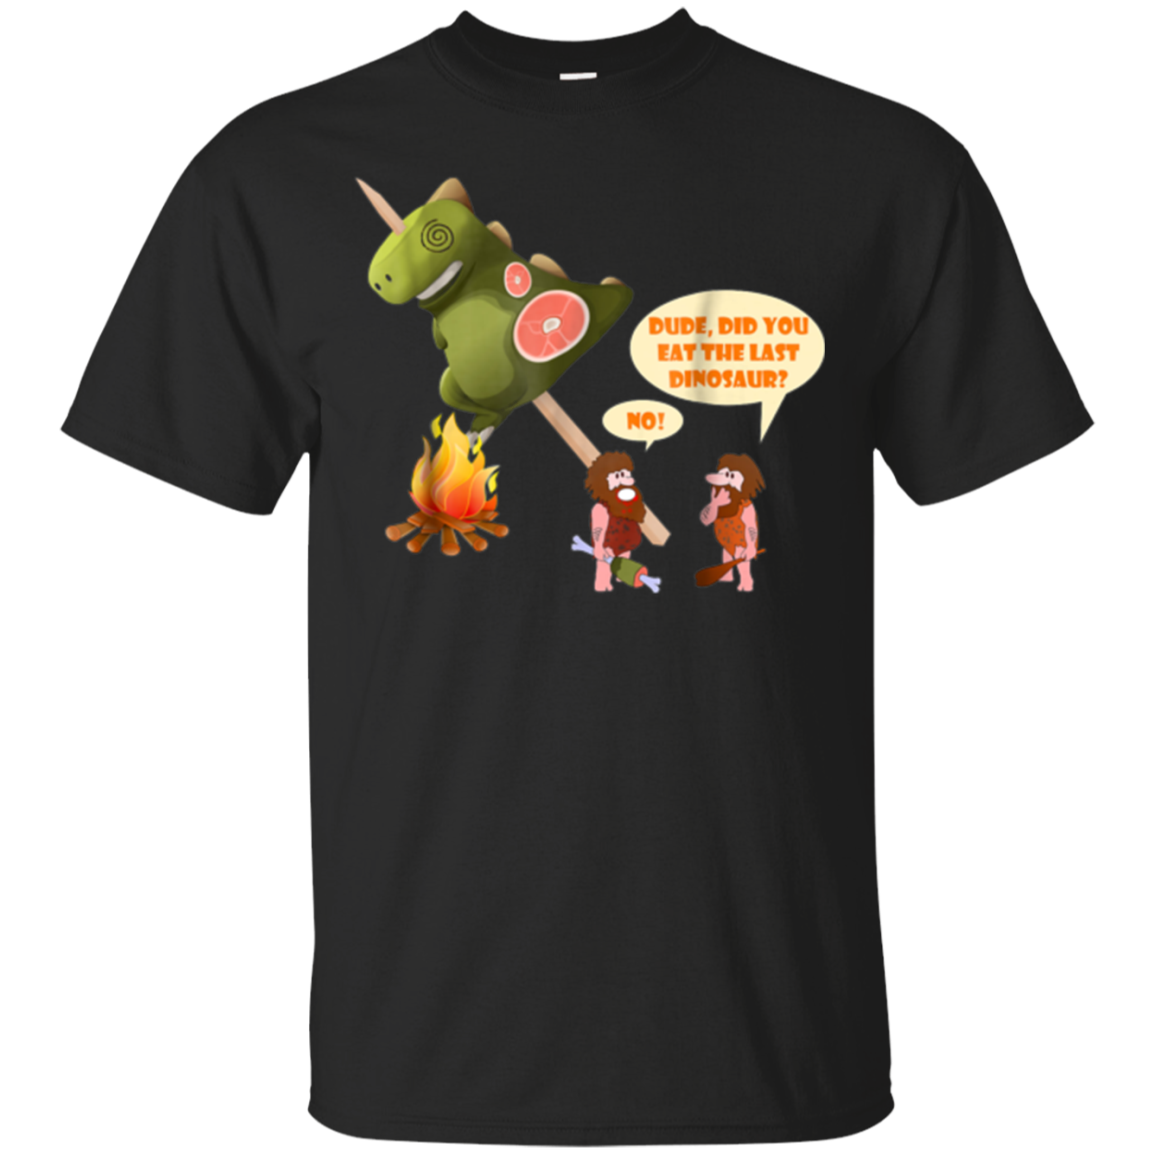 Dude Did You Eat The Last Dinosaur Funny Dinosaur T-Shirt